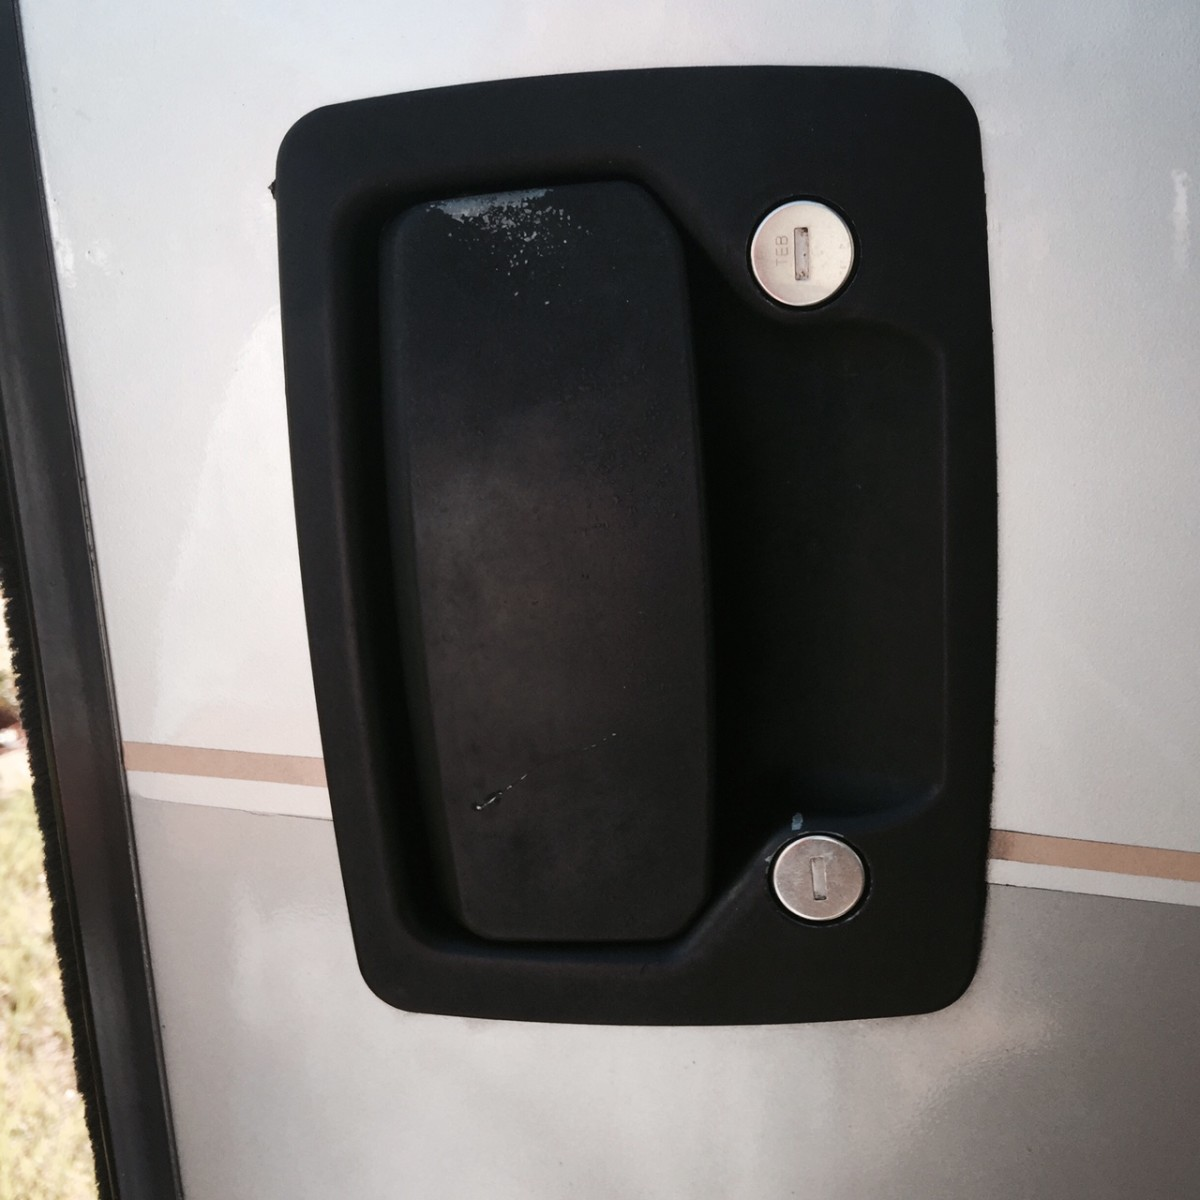 Your RV Door can lock you out, here's how to cure the problem.